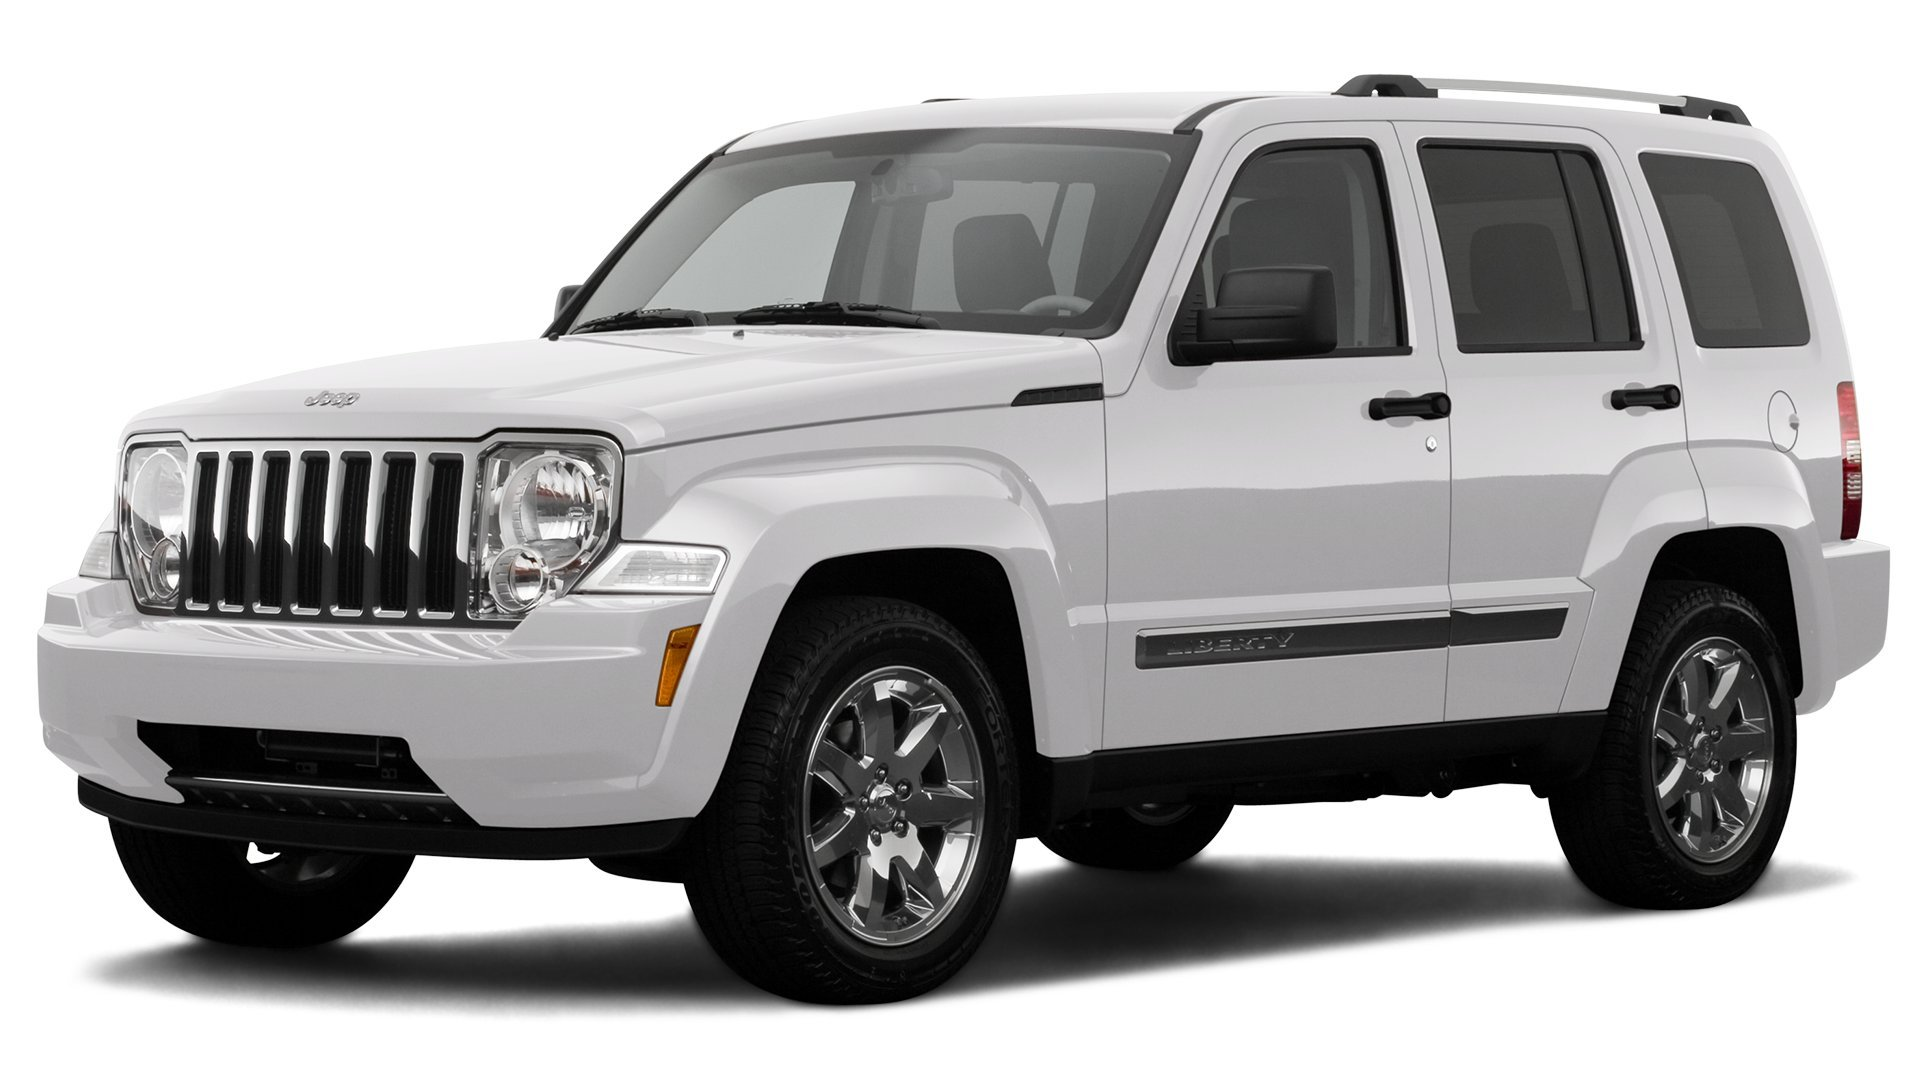 jeep liberty 2014 white. 2008 jeep liberty limited 4wheel drive 4door 2014 white